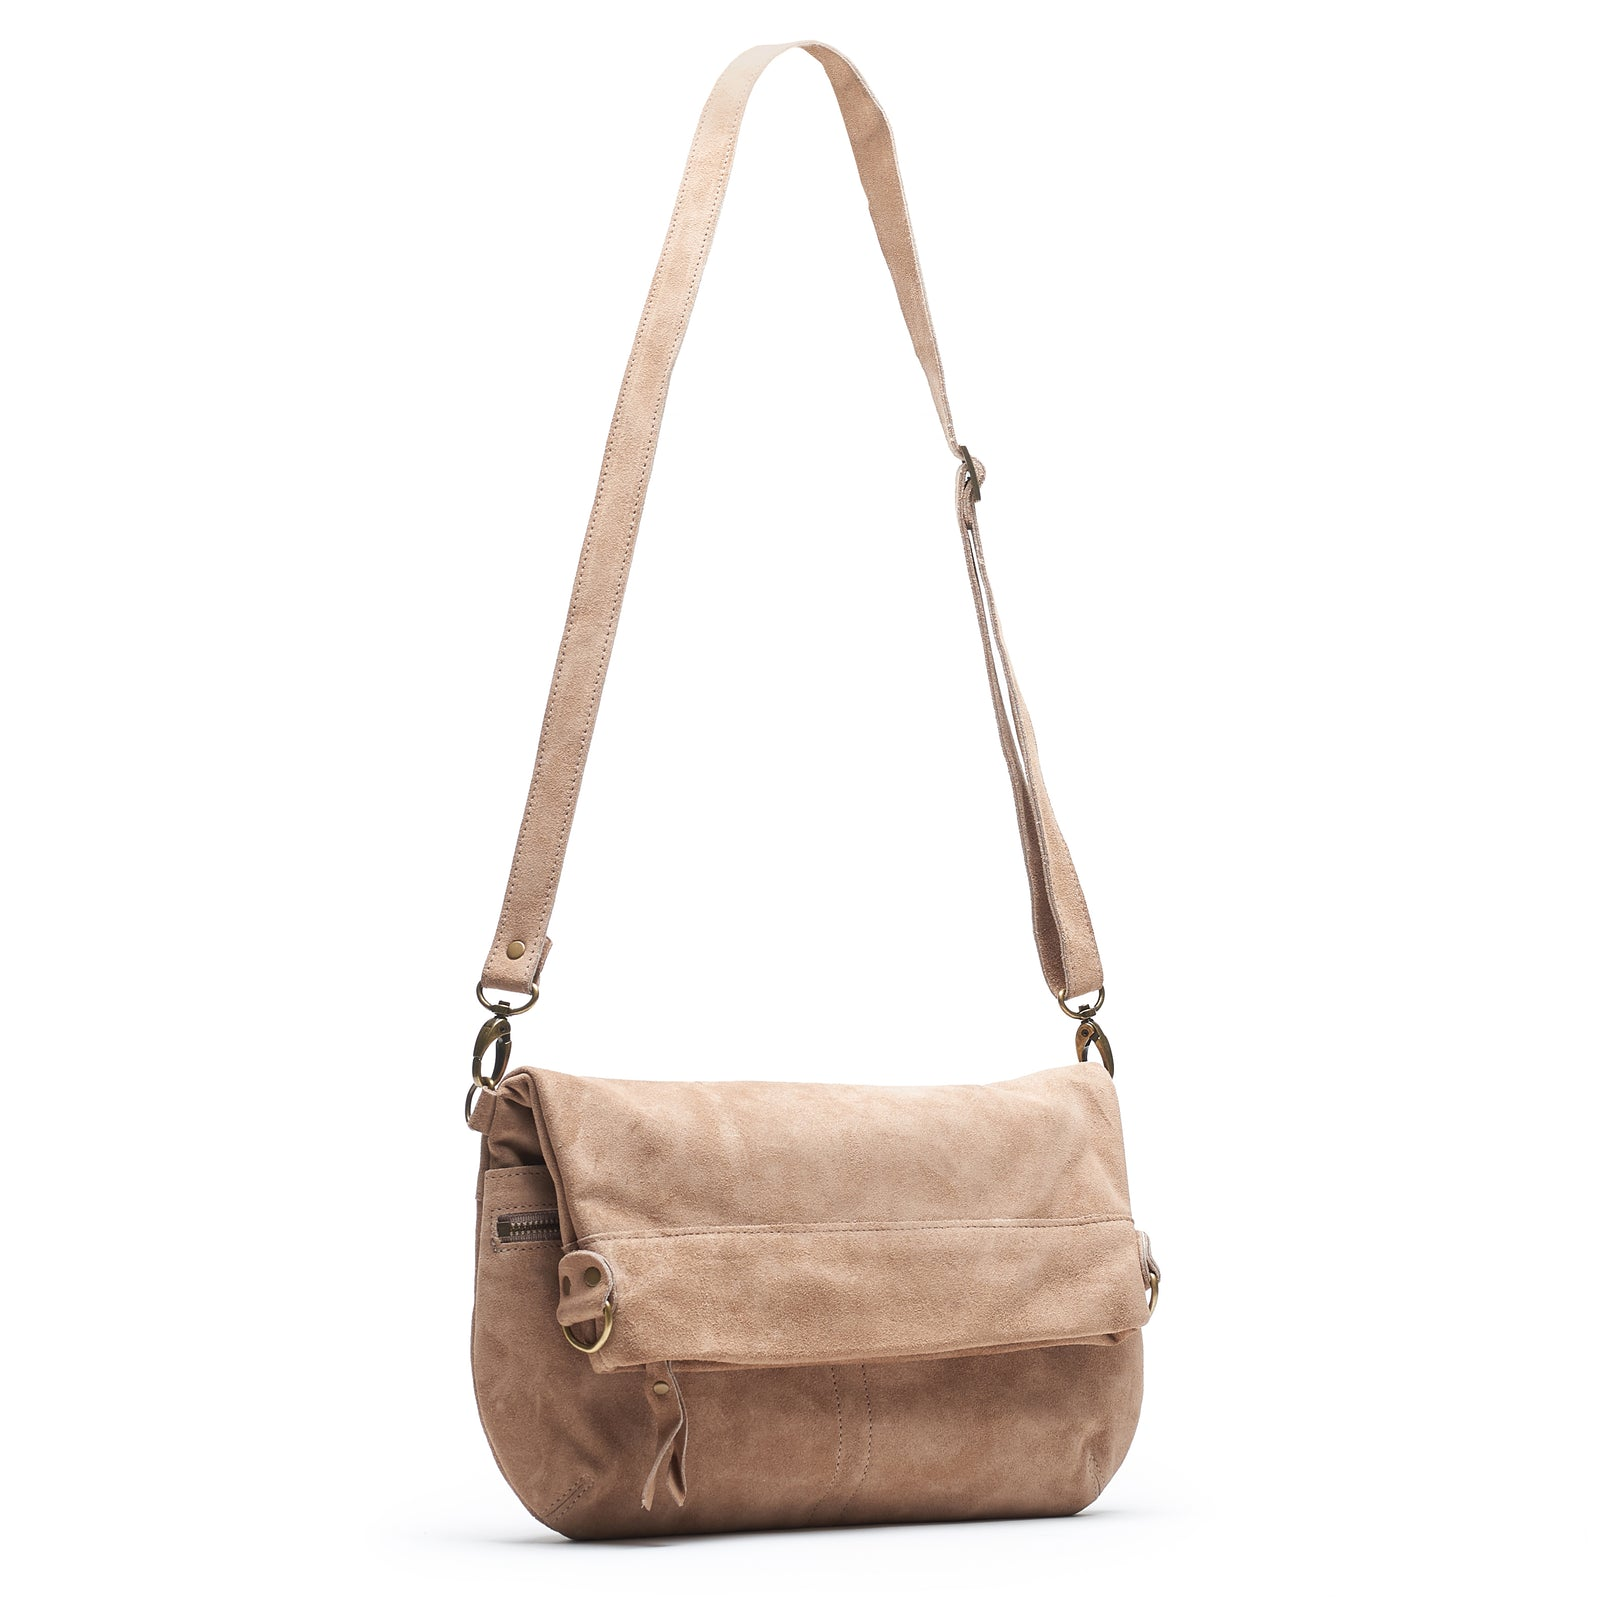 Mini-Lauren Crossbody - Fawn - Brynn Capella, Medium Crossbody